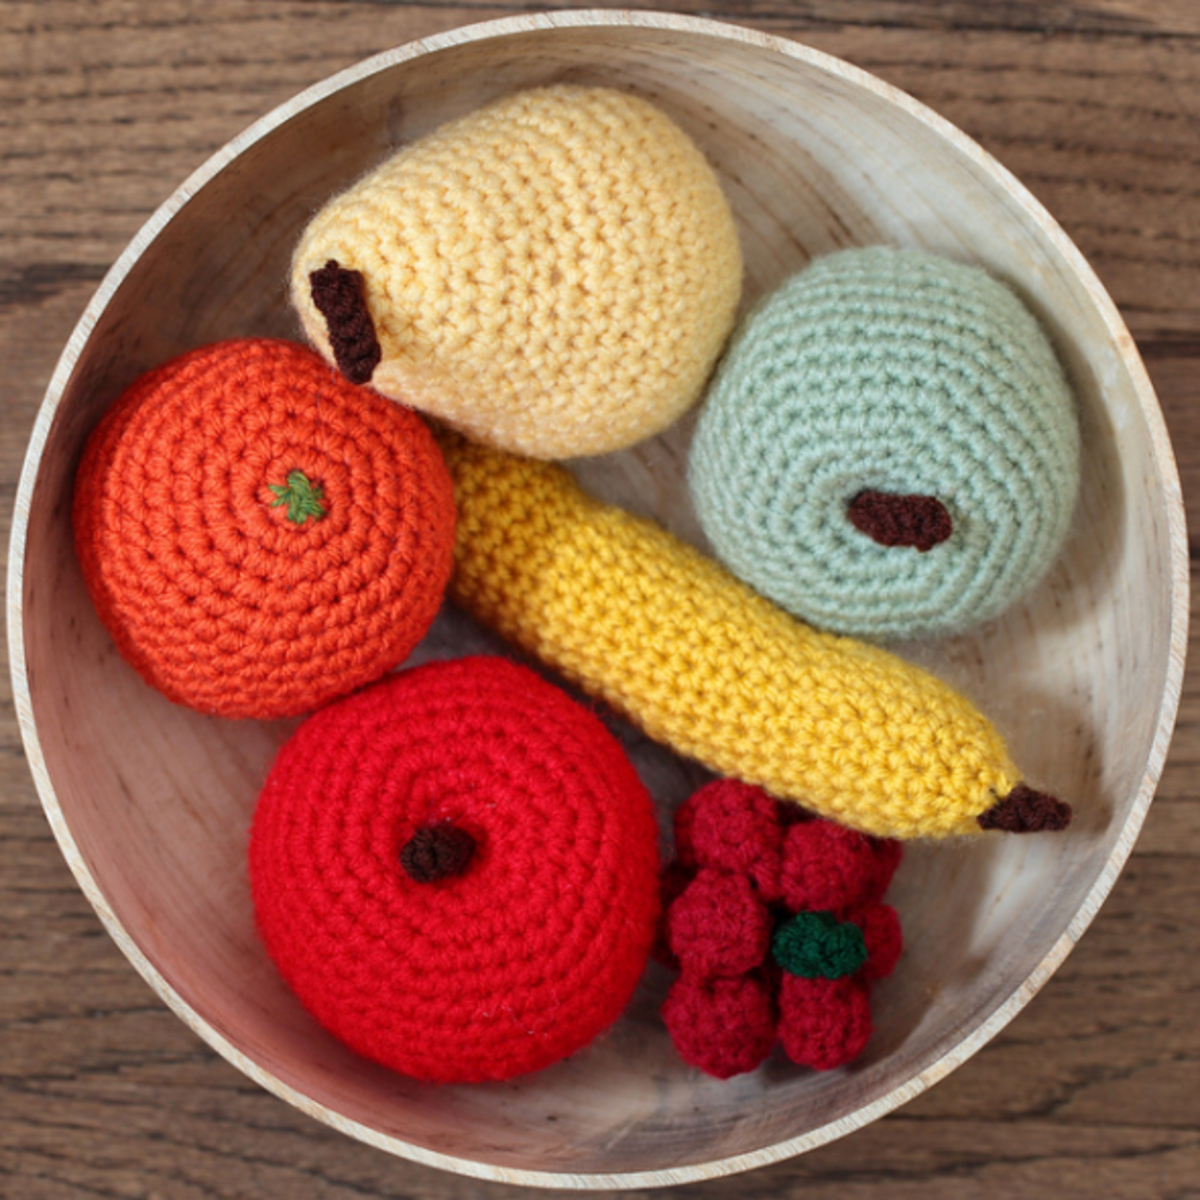 Amigurumi Beginners Guide : 50 Free Amigurumi Stuffed Toy Patterns & Crochet Tutorials ...